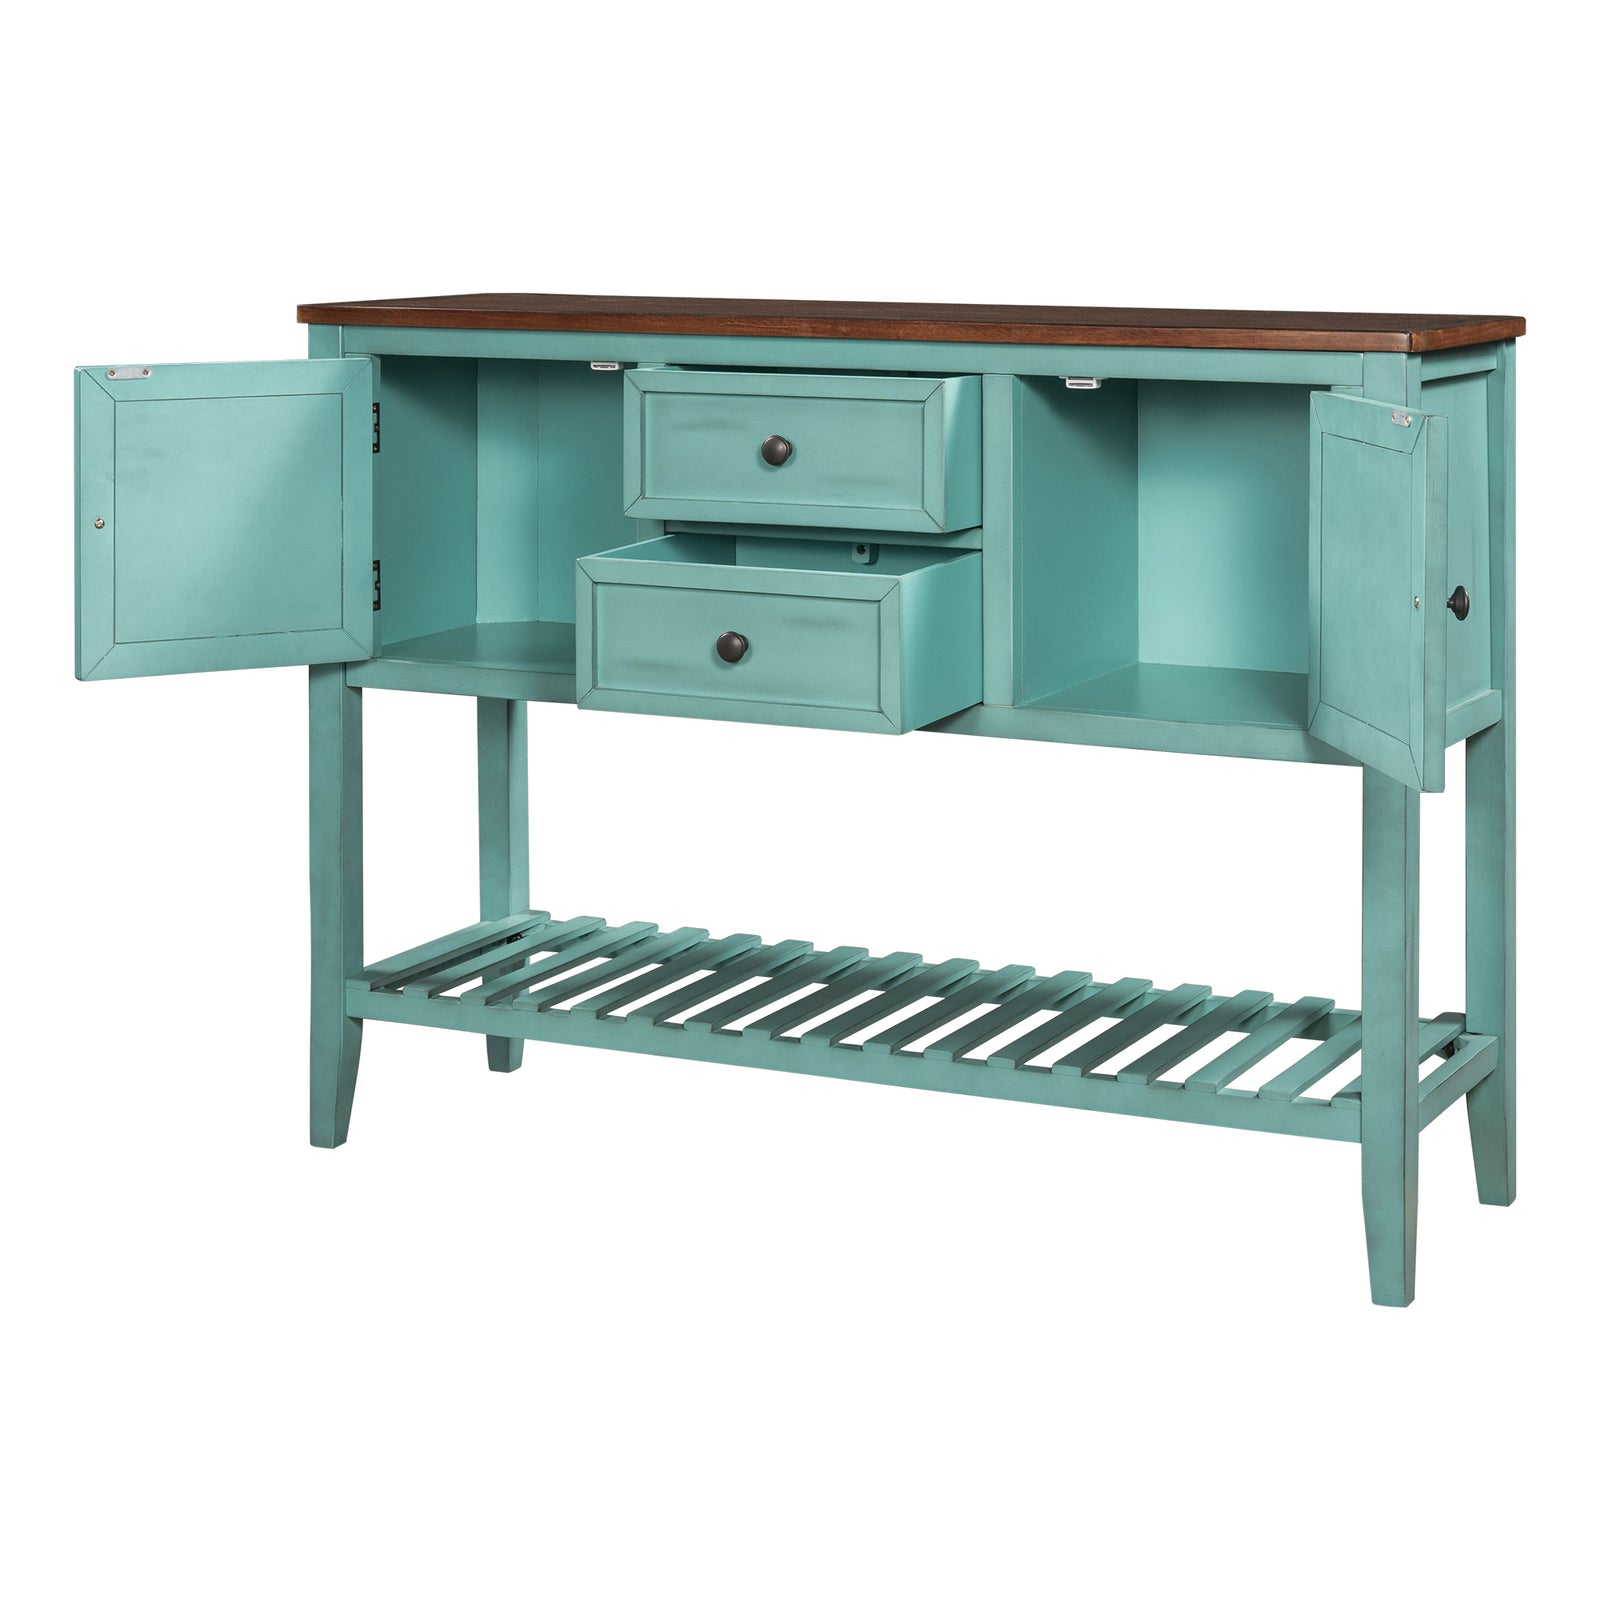 Cadet Blue Console Table Sideboard with Shutter Doors Two Storage Drawers and Bottom Shelf BH196438